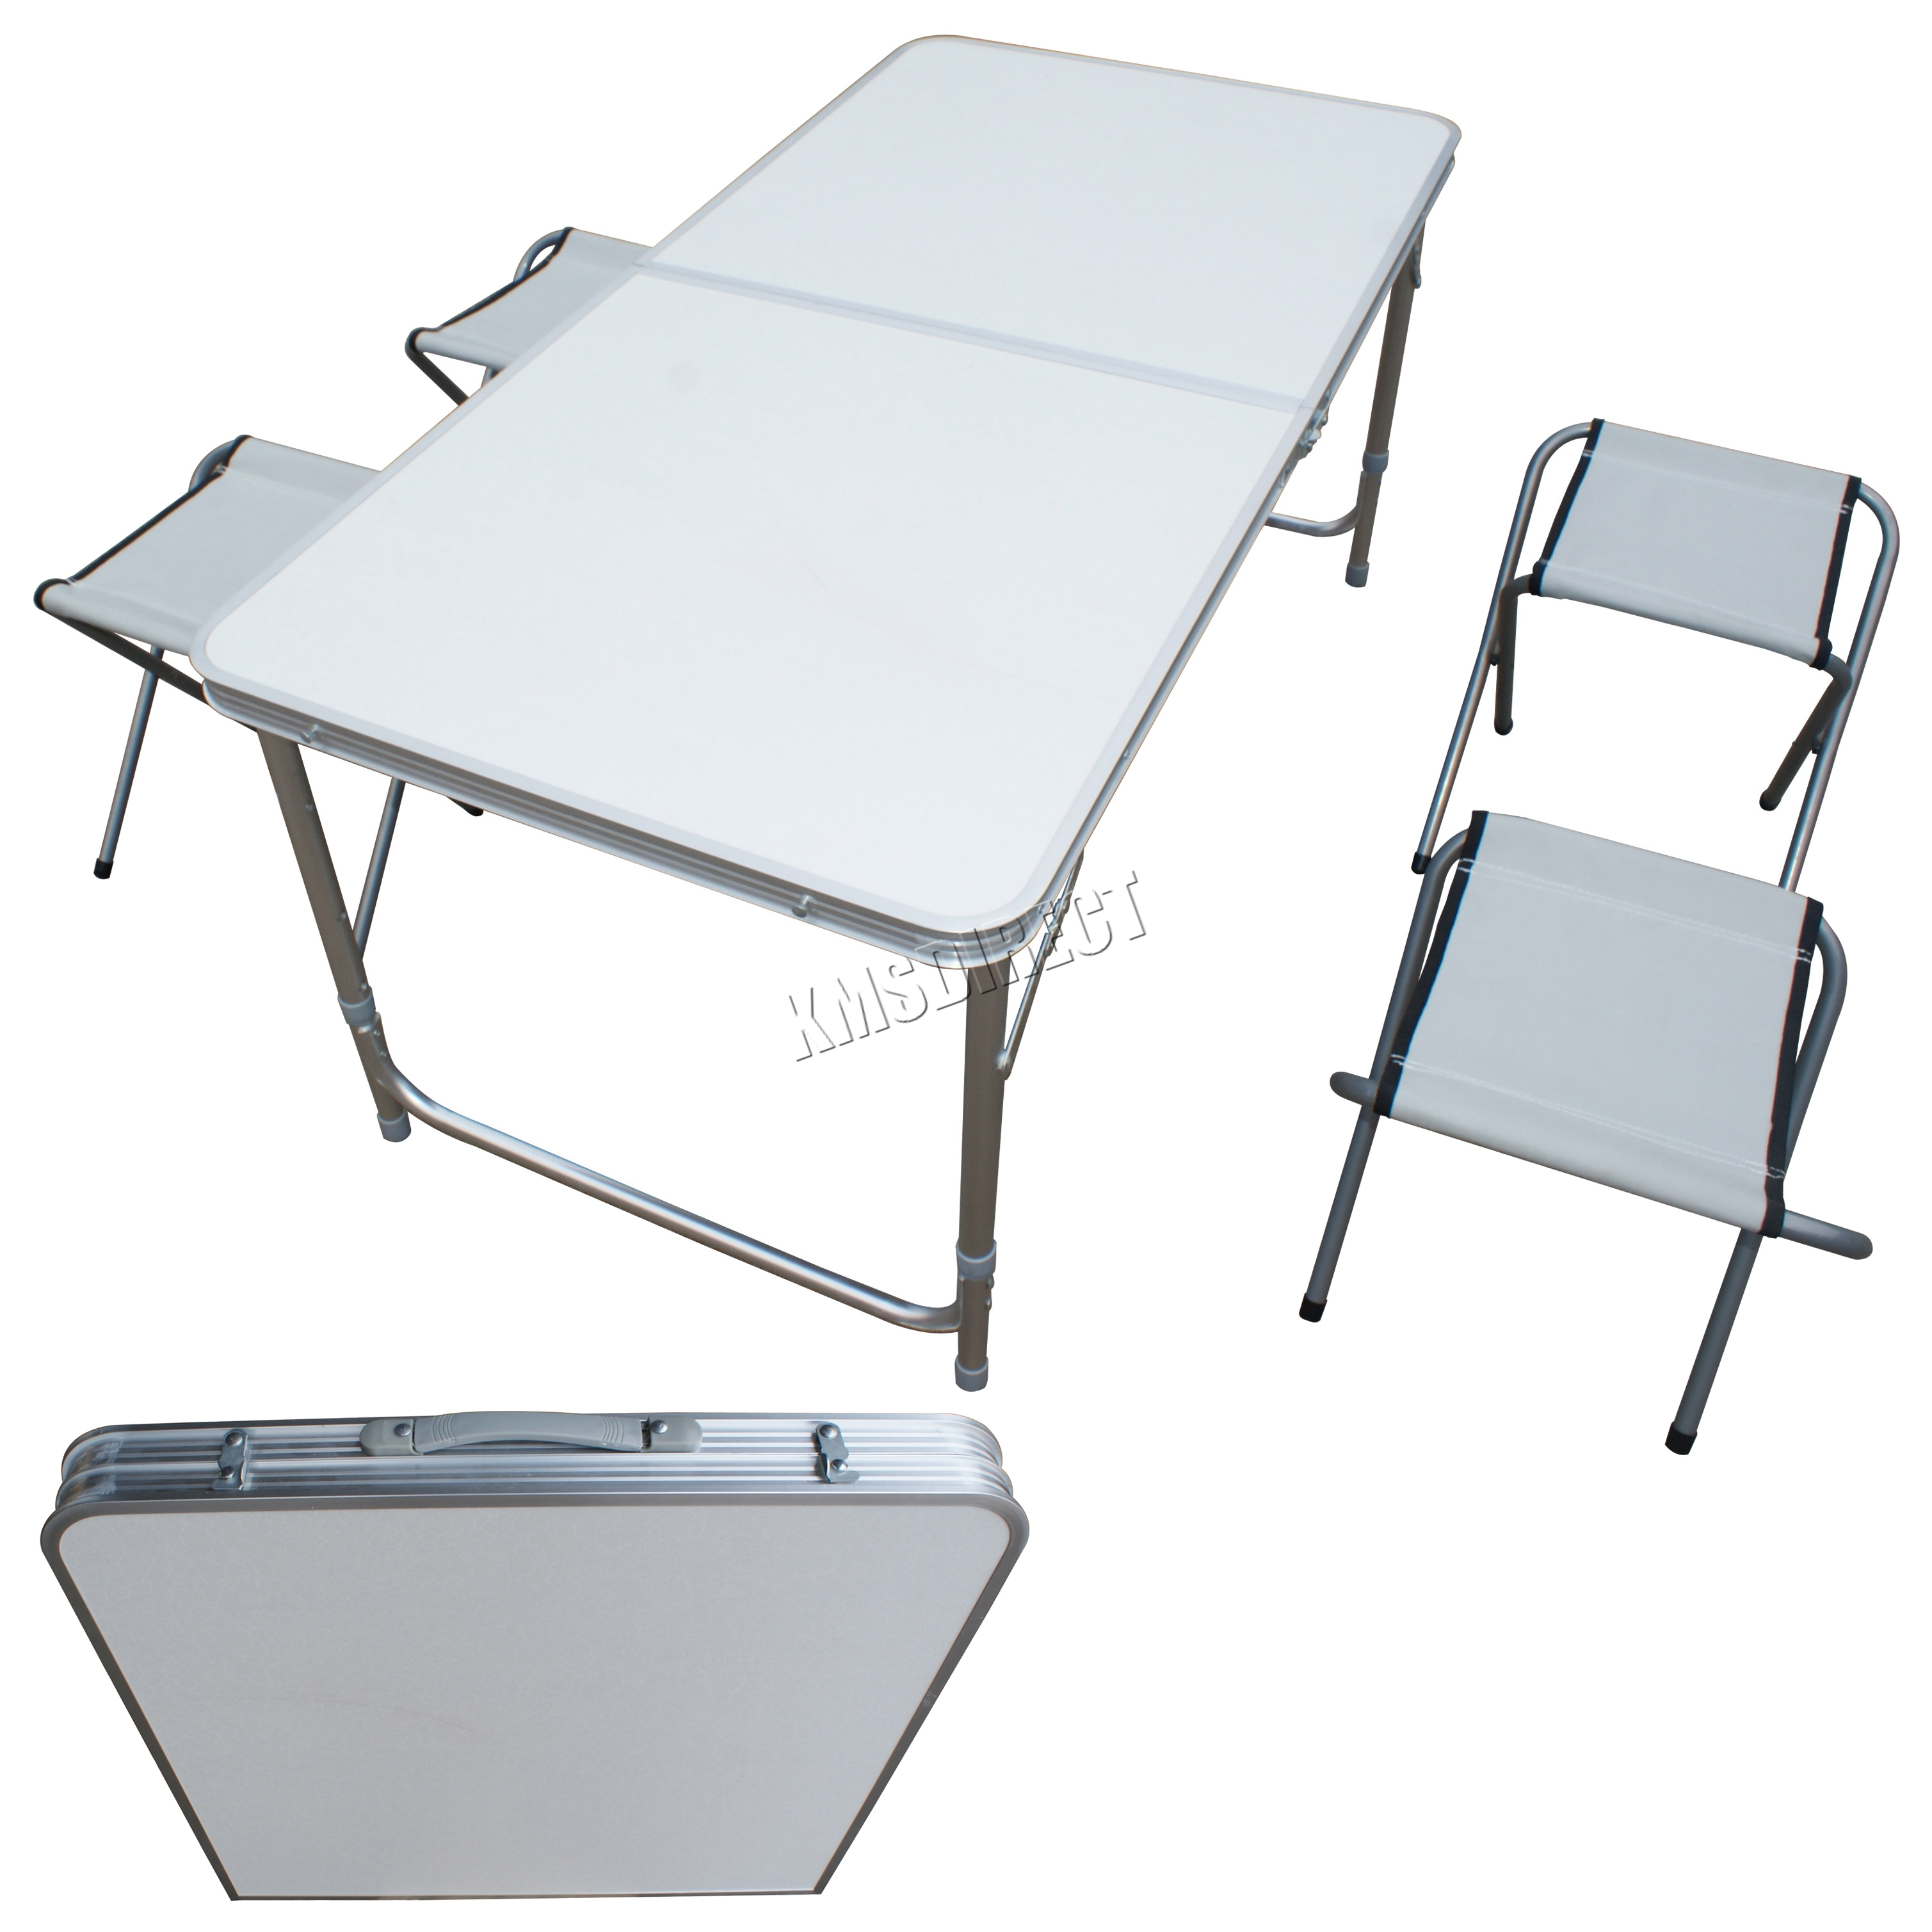 foxhunter jardin camping table pliable portable pique nique dinant l 39 ensemble ebay. Black Bedroom Furniture Sets. Home Design Ideas